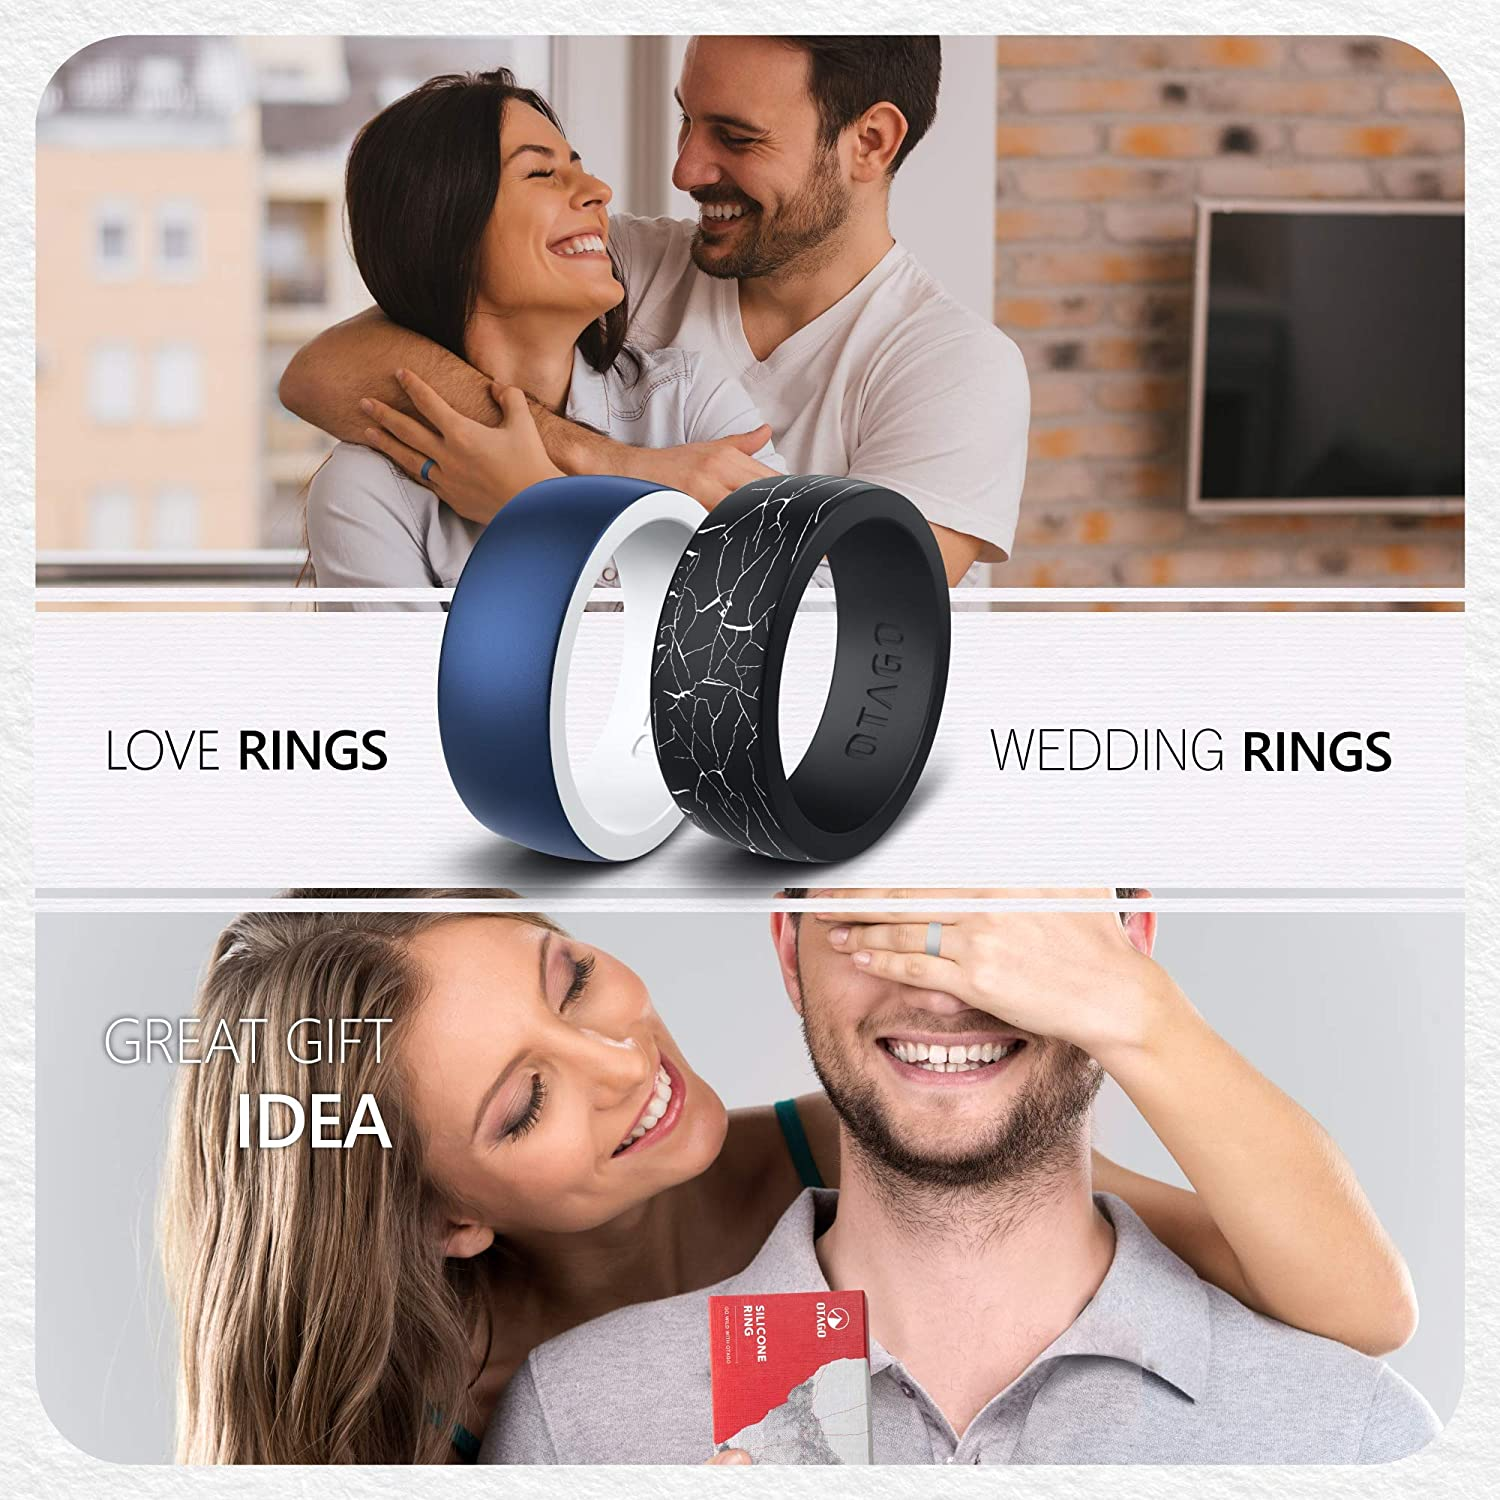 OTAGO Silicone Rings Wedding Bands for Women Men,8 Packs Colorful Rings Soft and Safe for Sports,Housework,Comfortable Fit,Fashion Style-Metal /& Vivid Matte Colours Size5-12